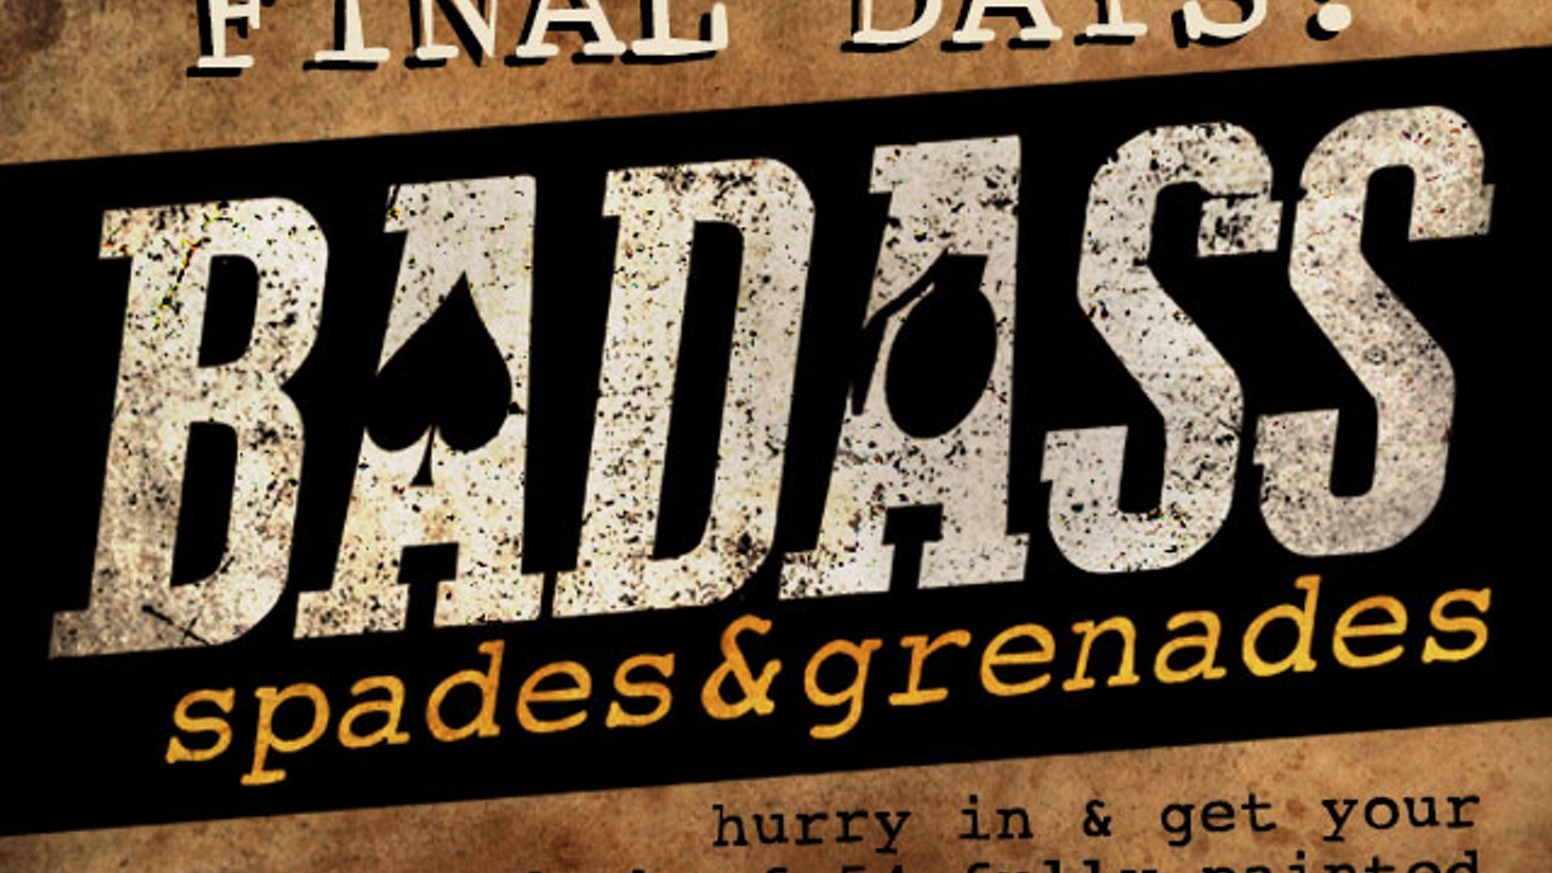 BADASS: Spades & Grenades. The only deck where every card game you play also qualifies as War.